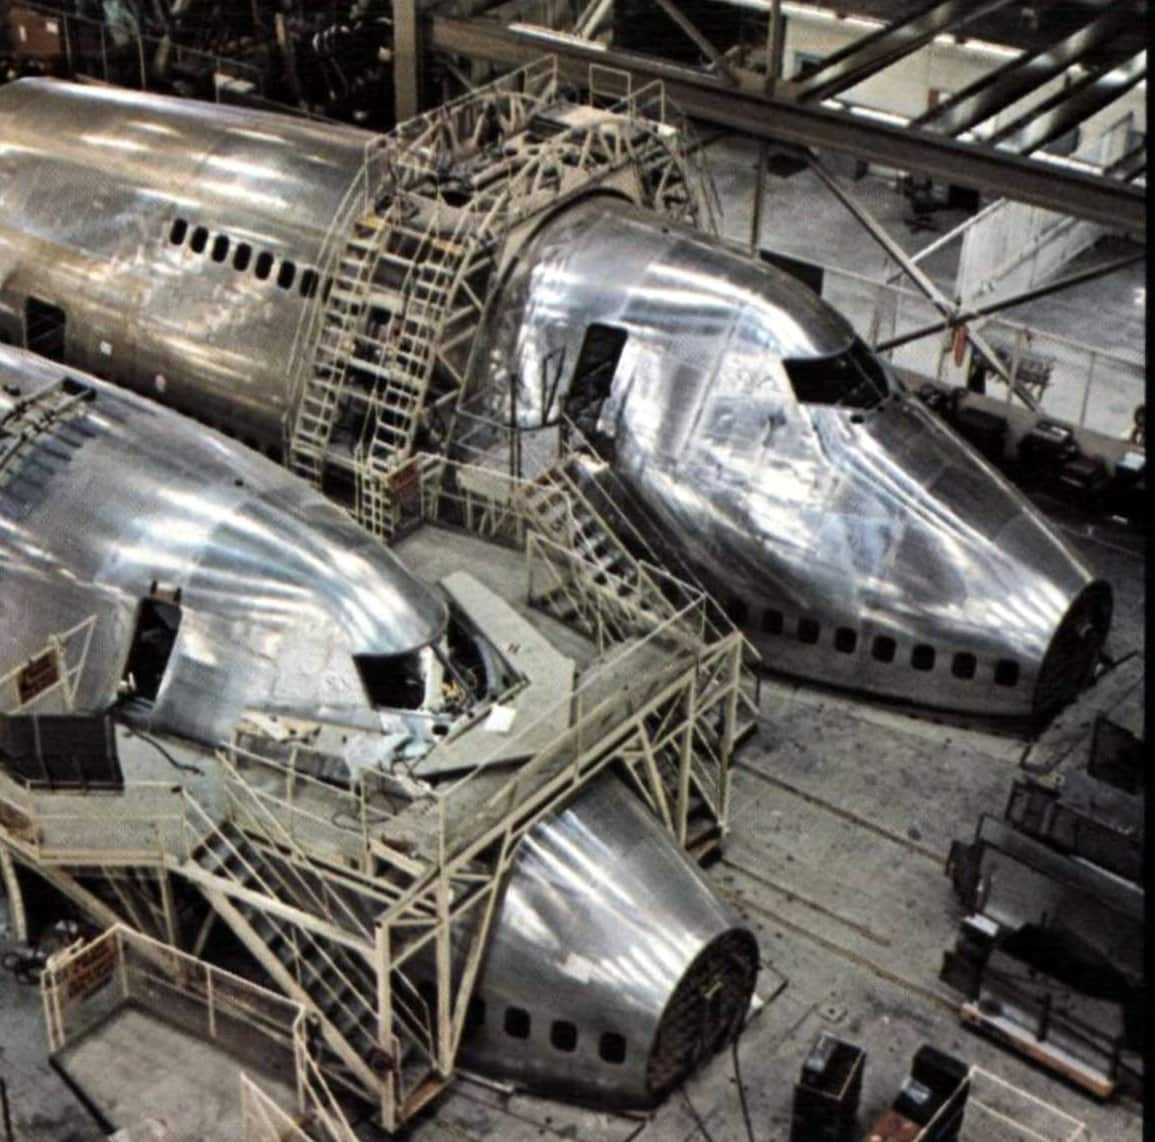 Two Boeing 747s in final assembly (1974)